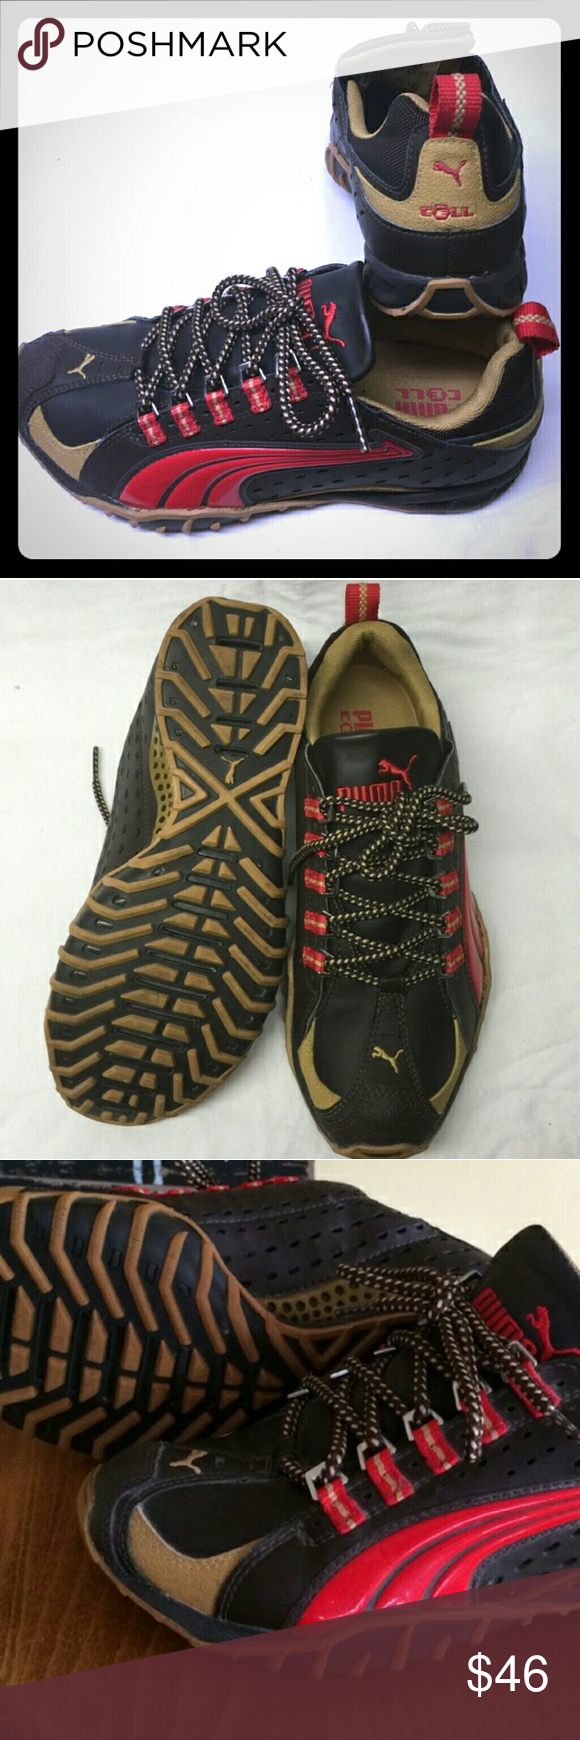 4f14b688a1cd Puma Cell Alpine Trail Racer Designed with an aggressive low-profile  midsole outsole combo